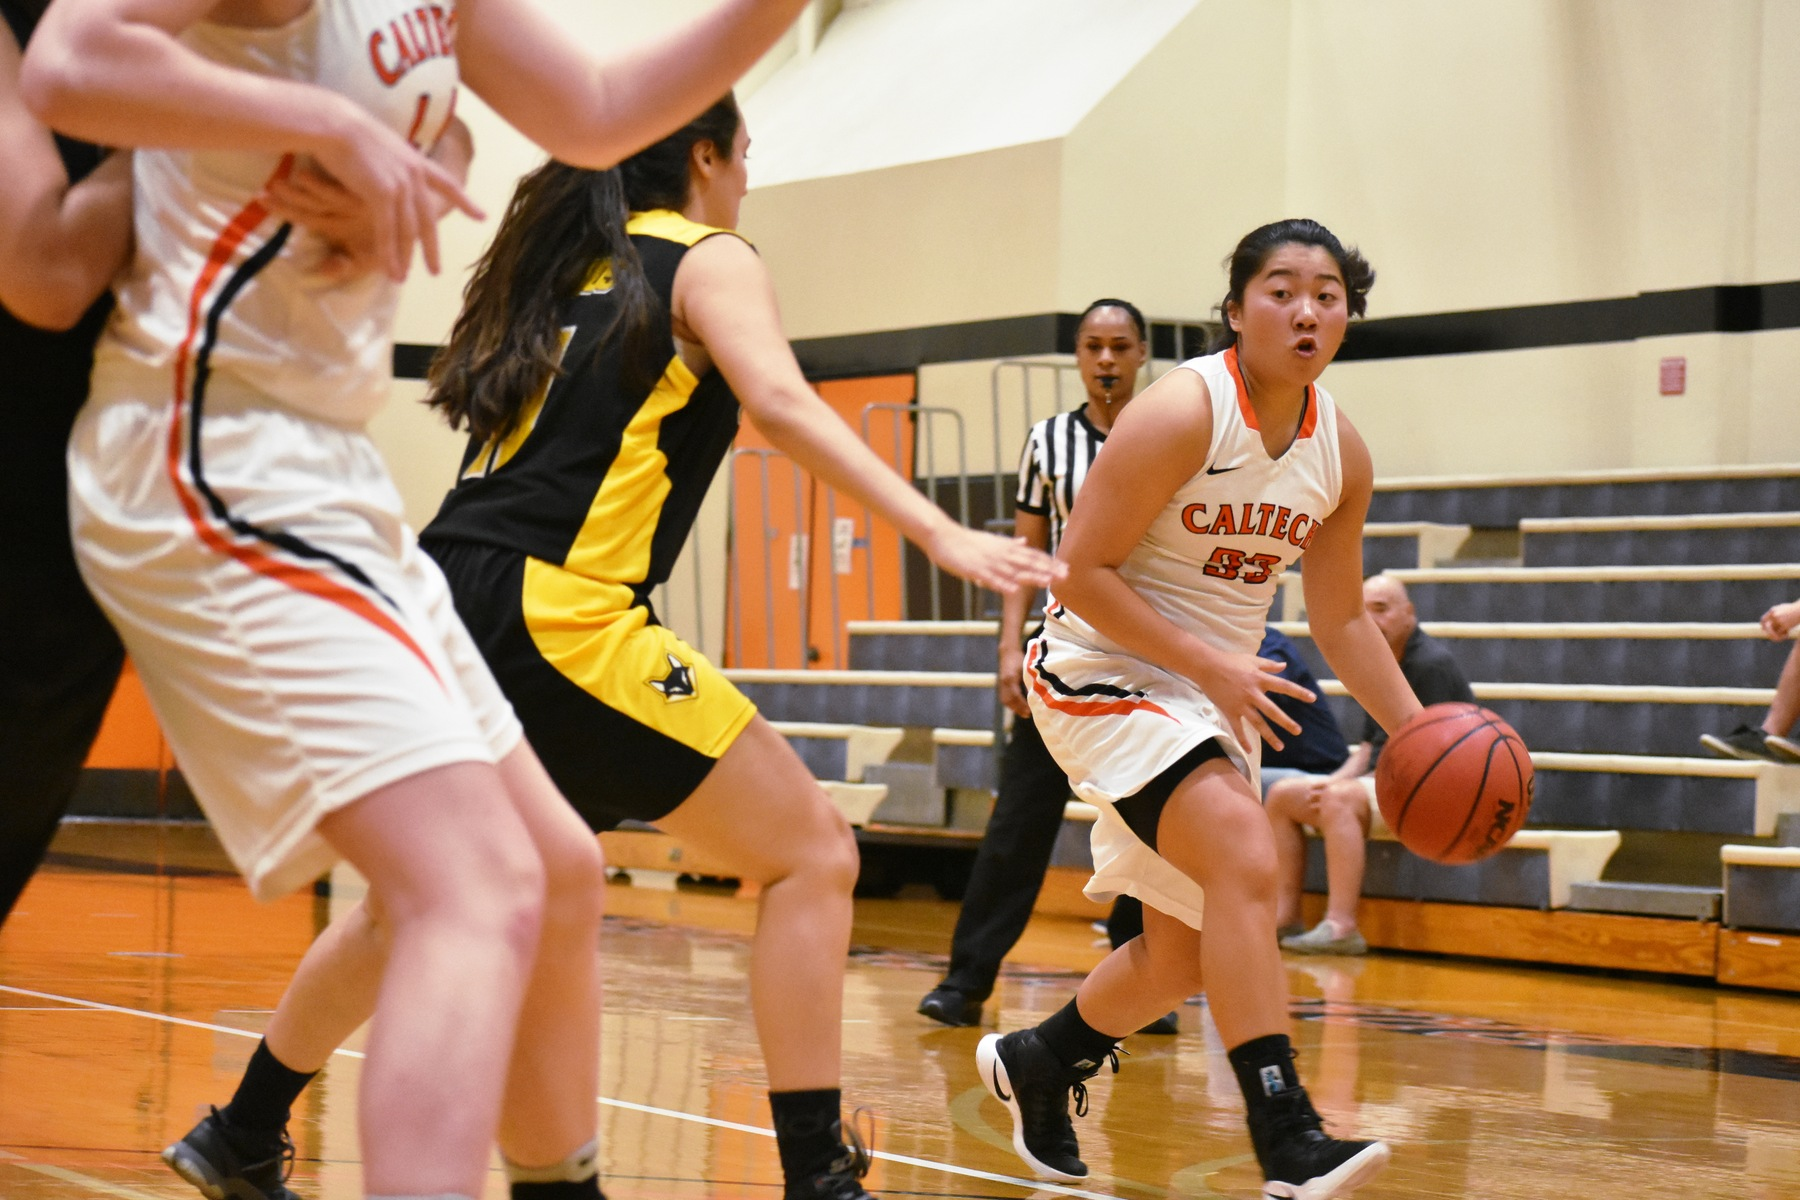 Women's Basketball Forces Nailbiter in Home Opener